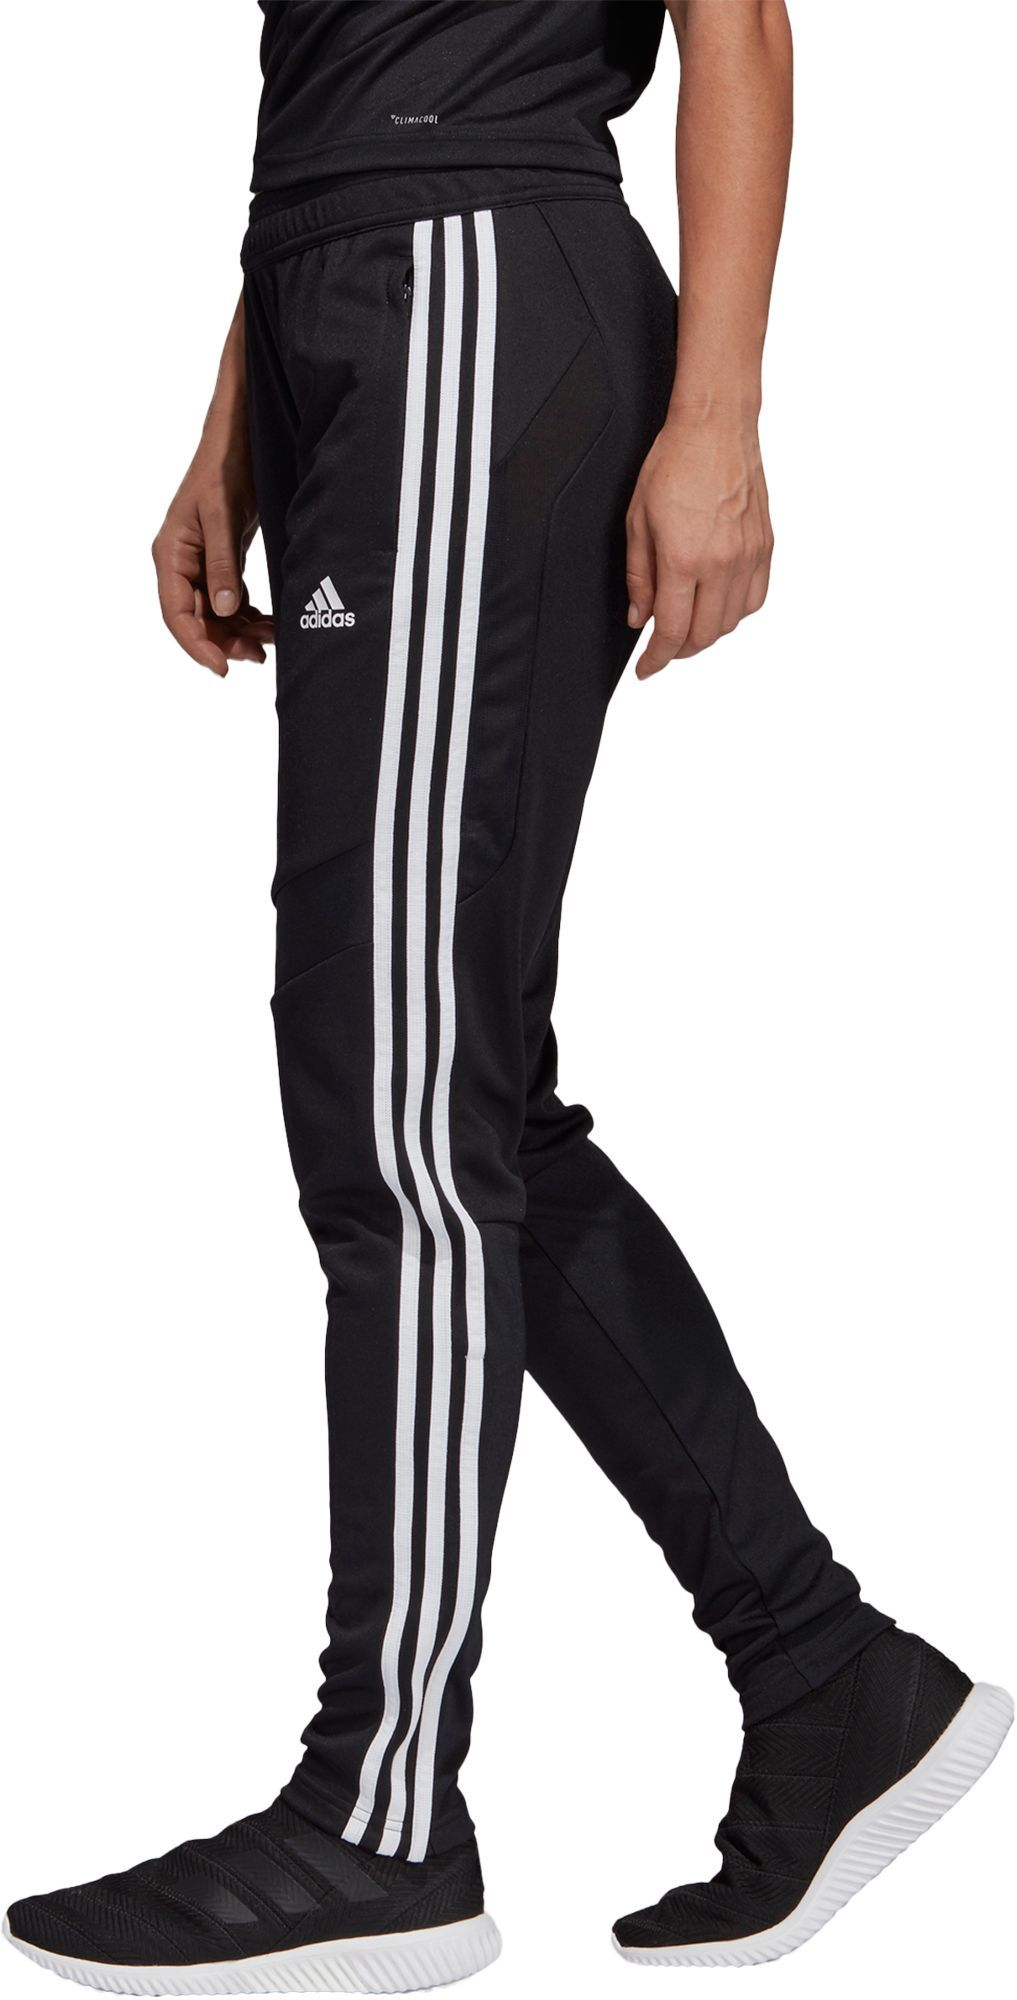 6663c201e adidas Women's Tiro 19 Training Pants in 2019 | Products | Adidas ...